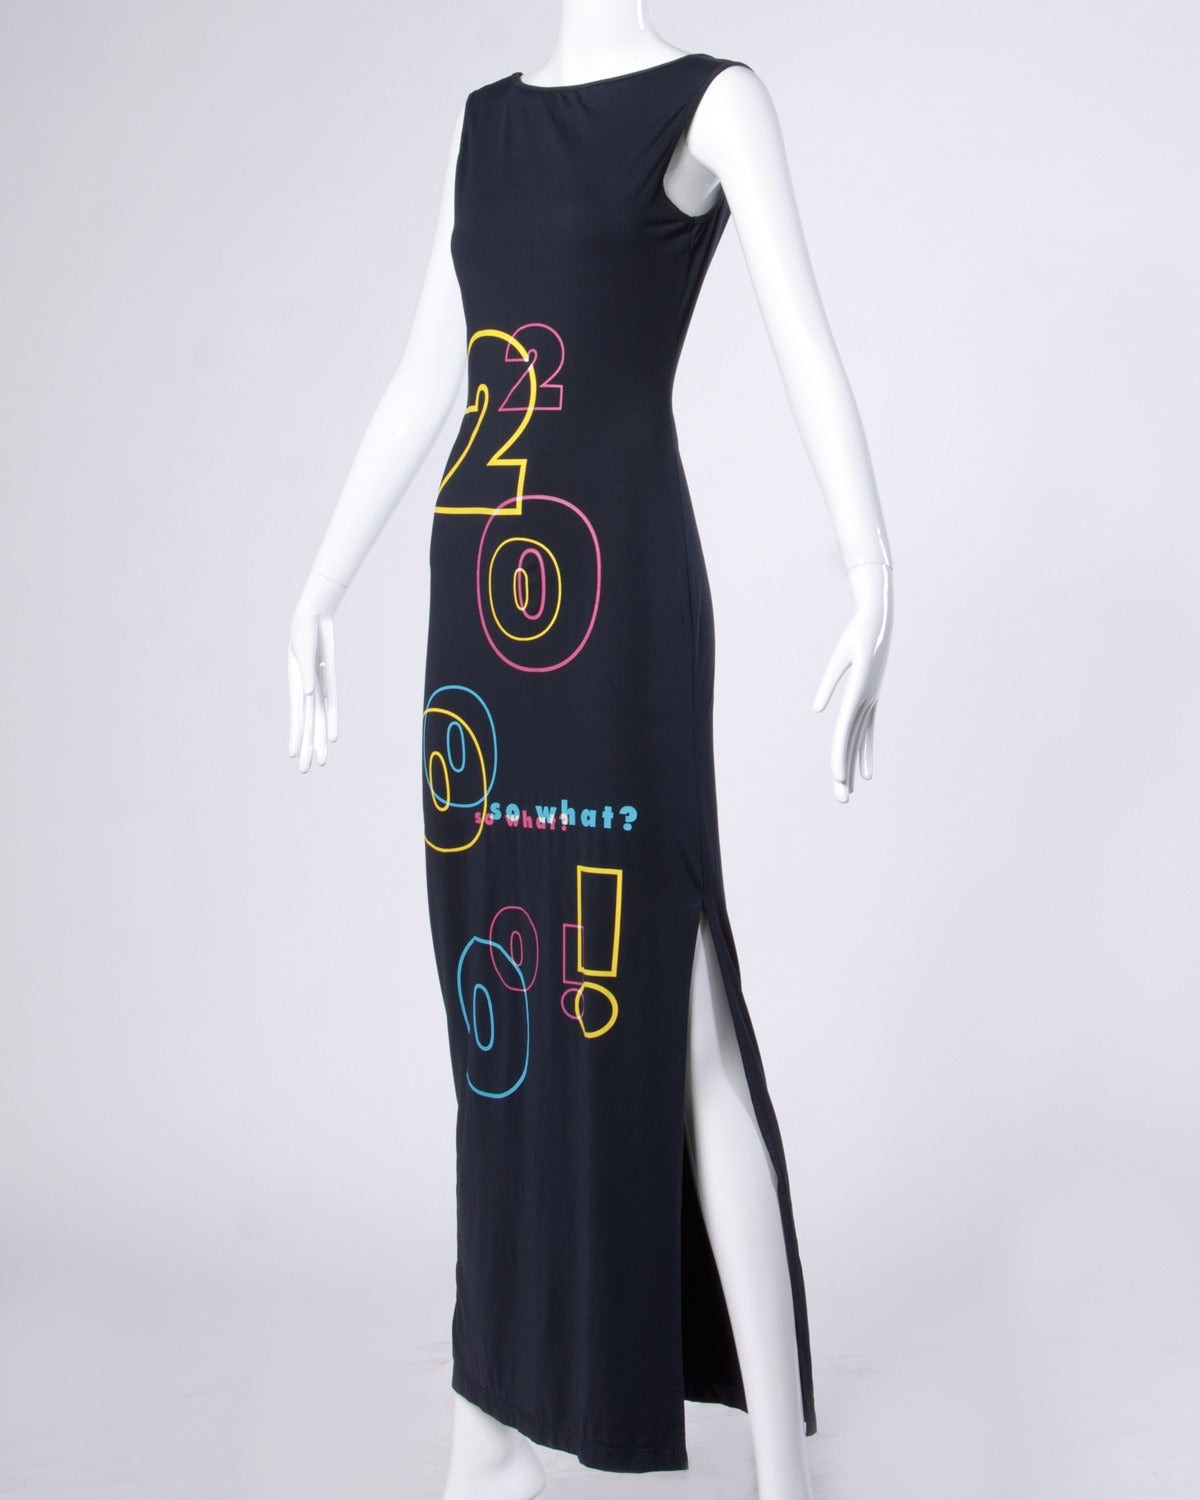 "Black Moschino Jeans ""2000 so what?"" Y2K Millennium Maxi Dress For Sale"